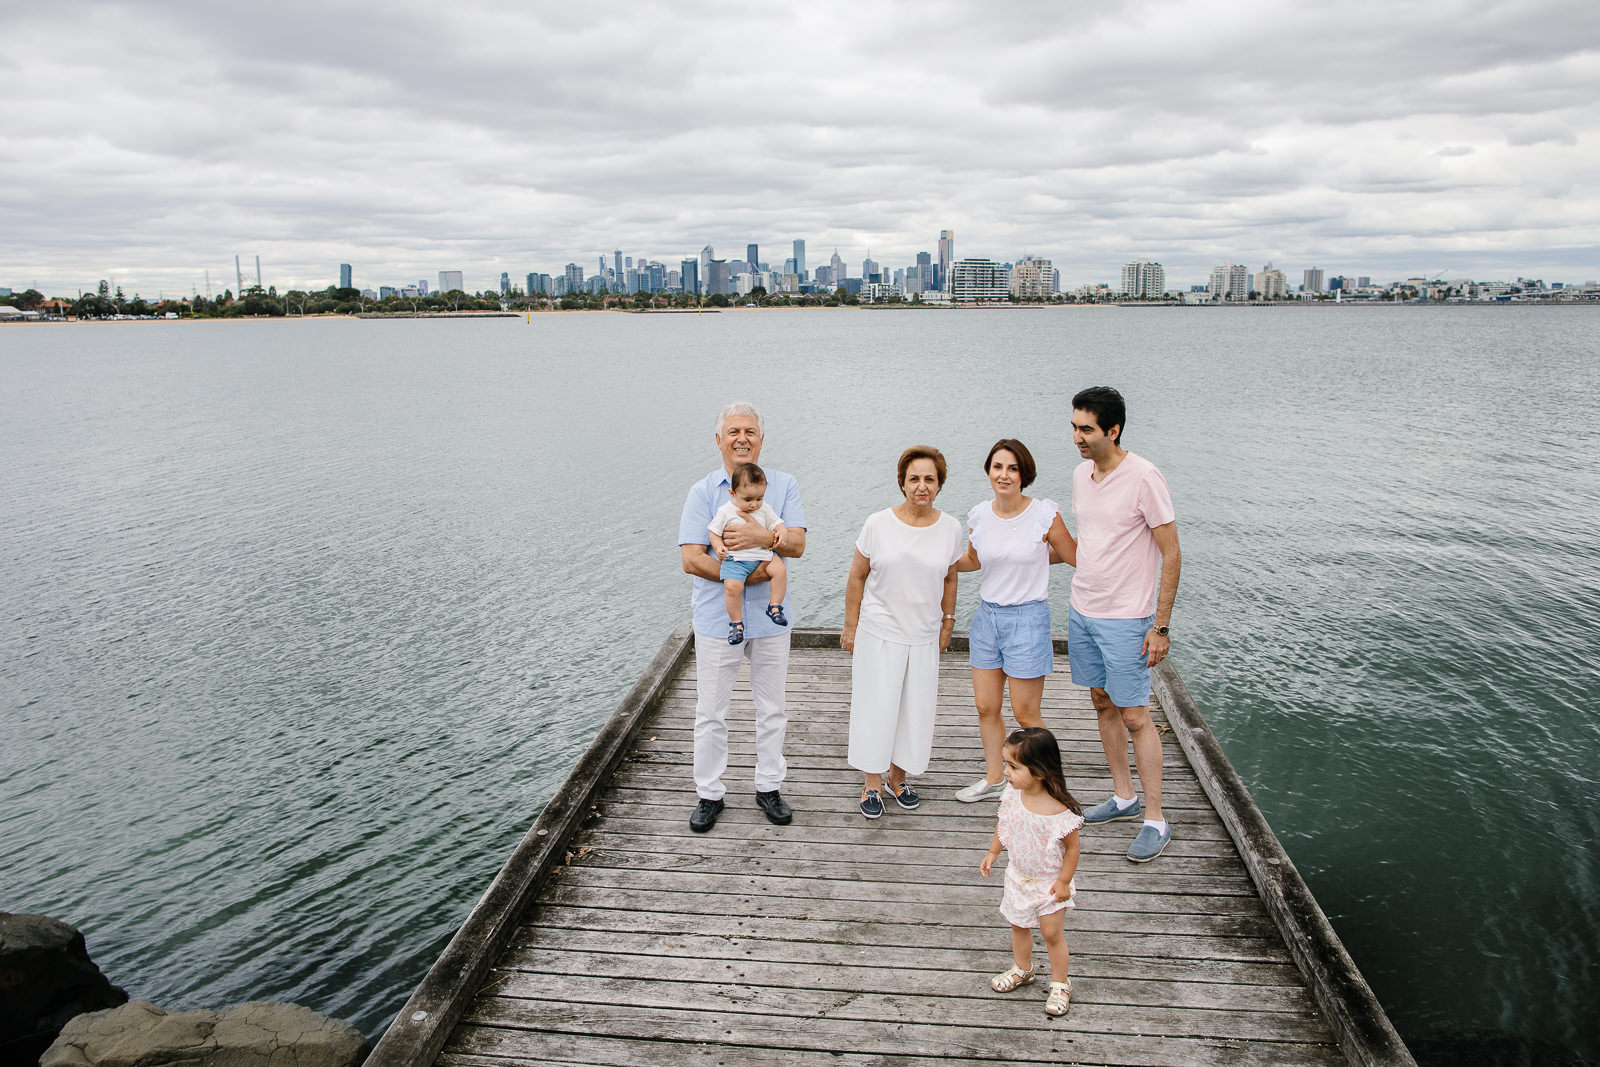 Melbourne beaches and ocean locations for family photos - candid and natural photos in Melbourne